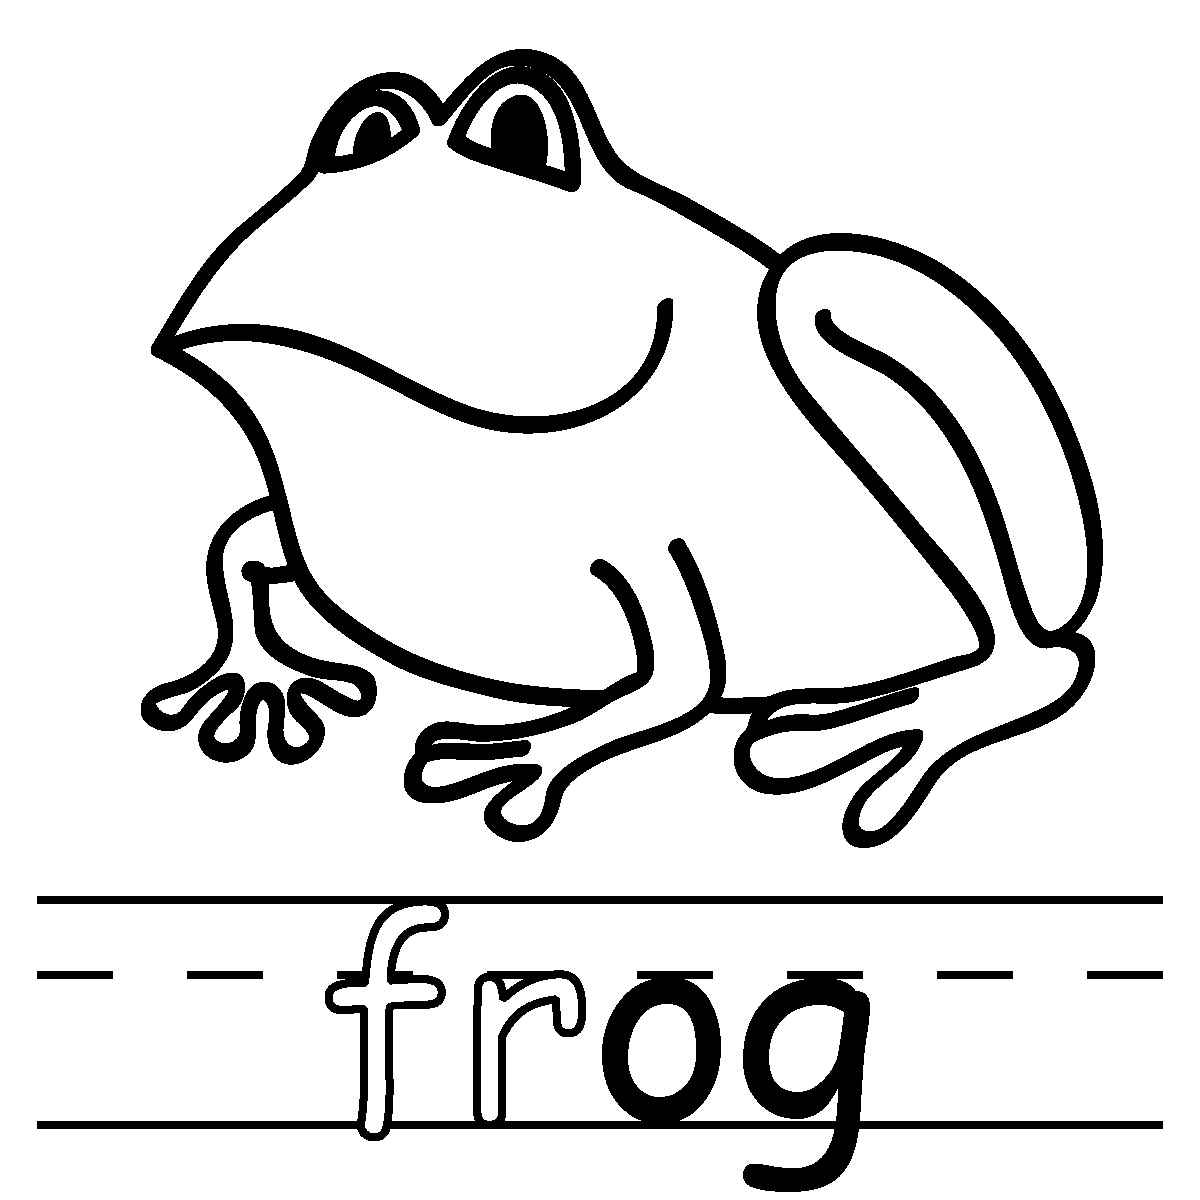 1200x1200 Frog Black And White Frog Clip Art Black And White Free Clipart